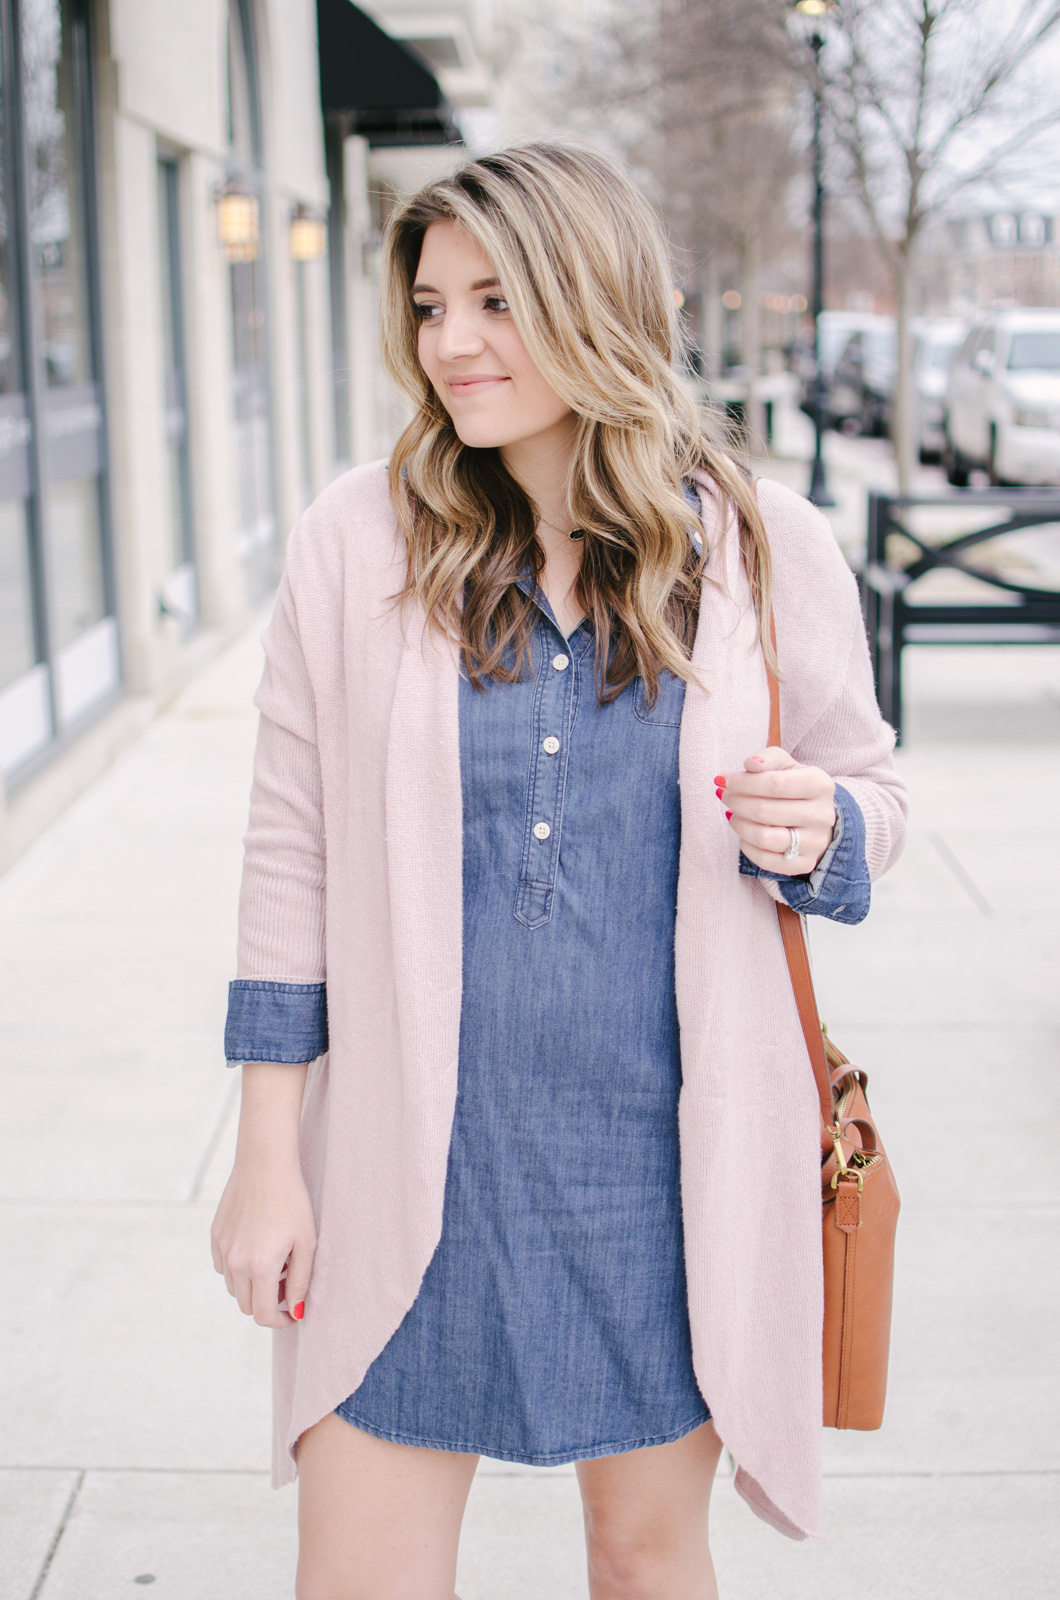 chambray dress + blush cardigan - chambray dress spring outfit | bylaurenm.com